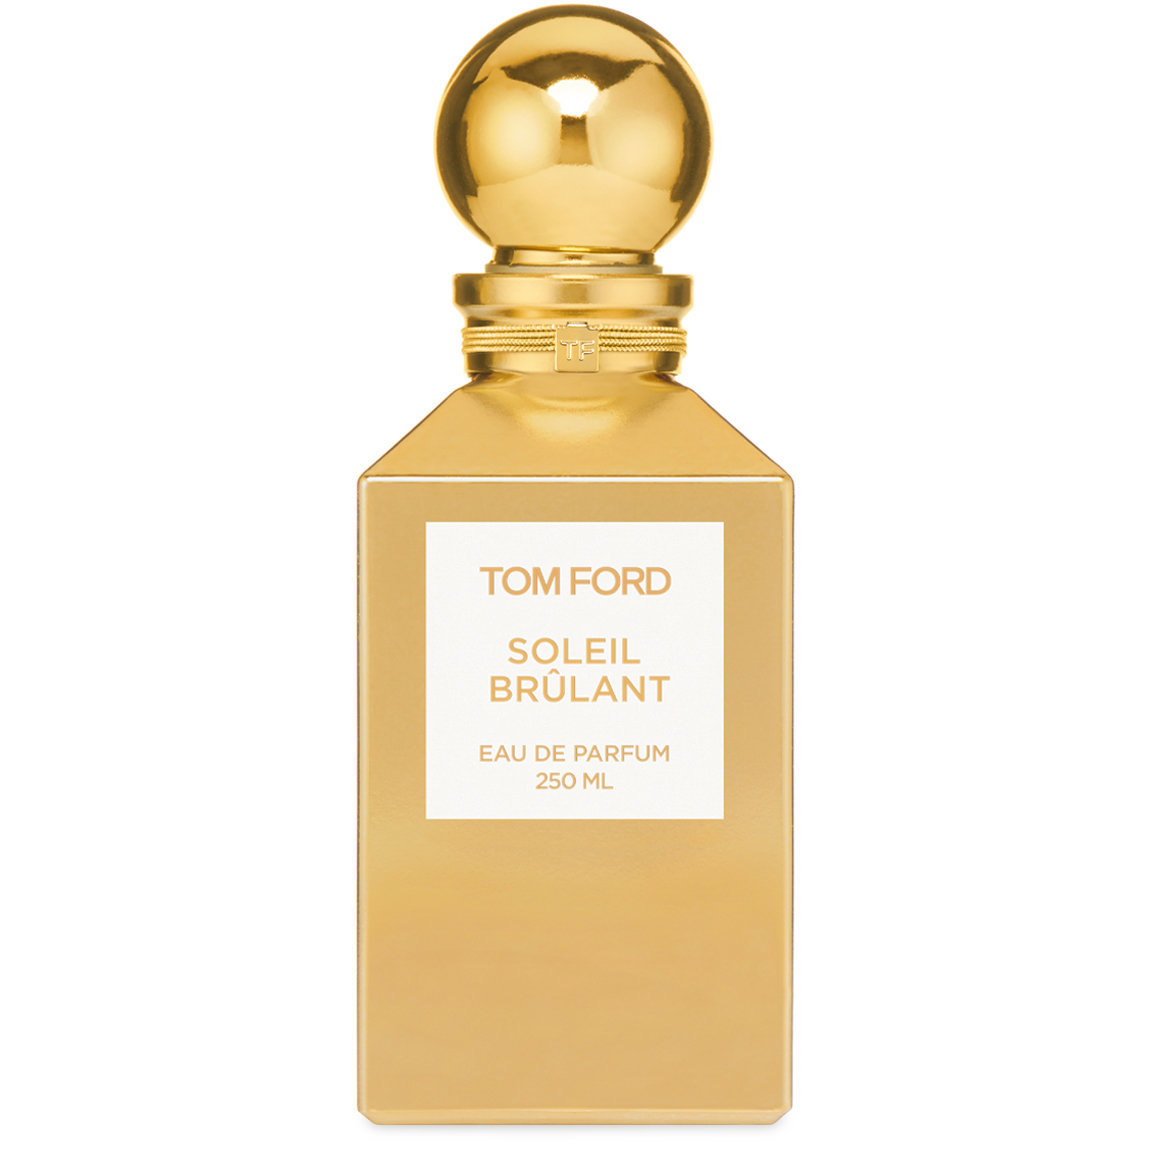 TOM FORD Soleil Brûlant 250 ml alternative view 1 - product swatch.